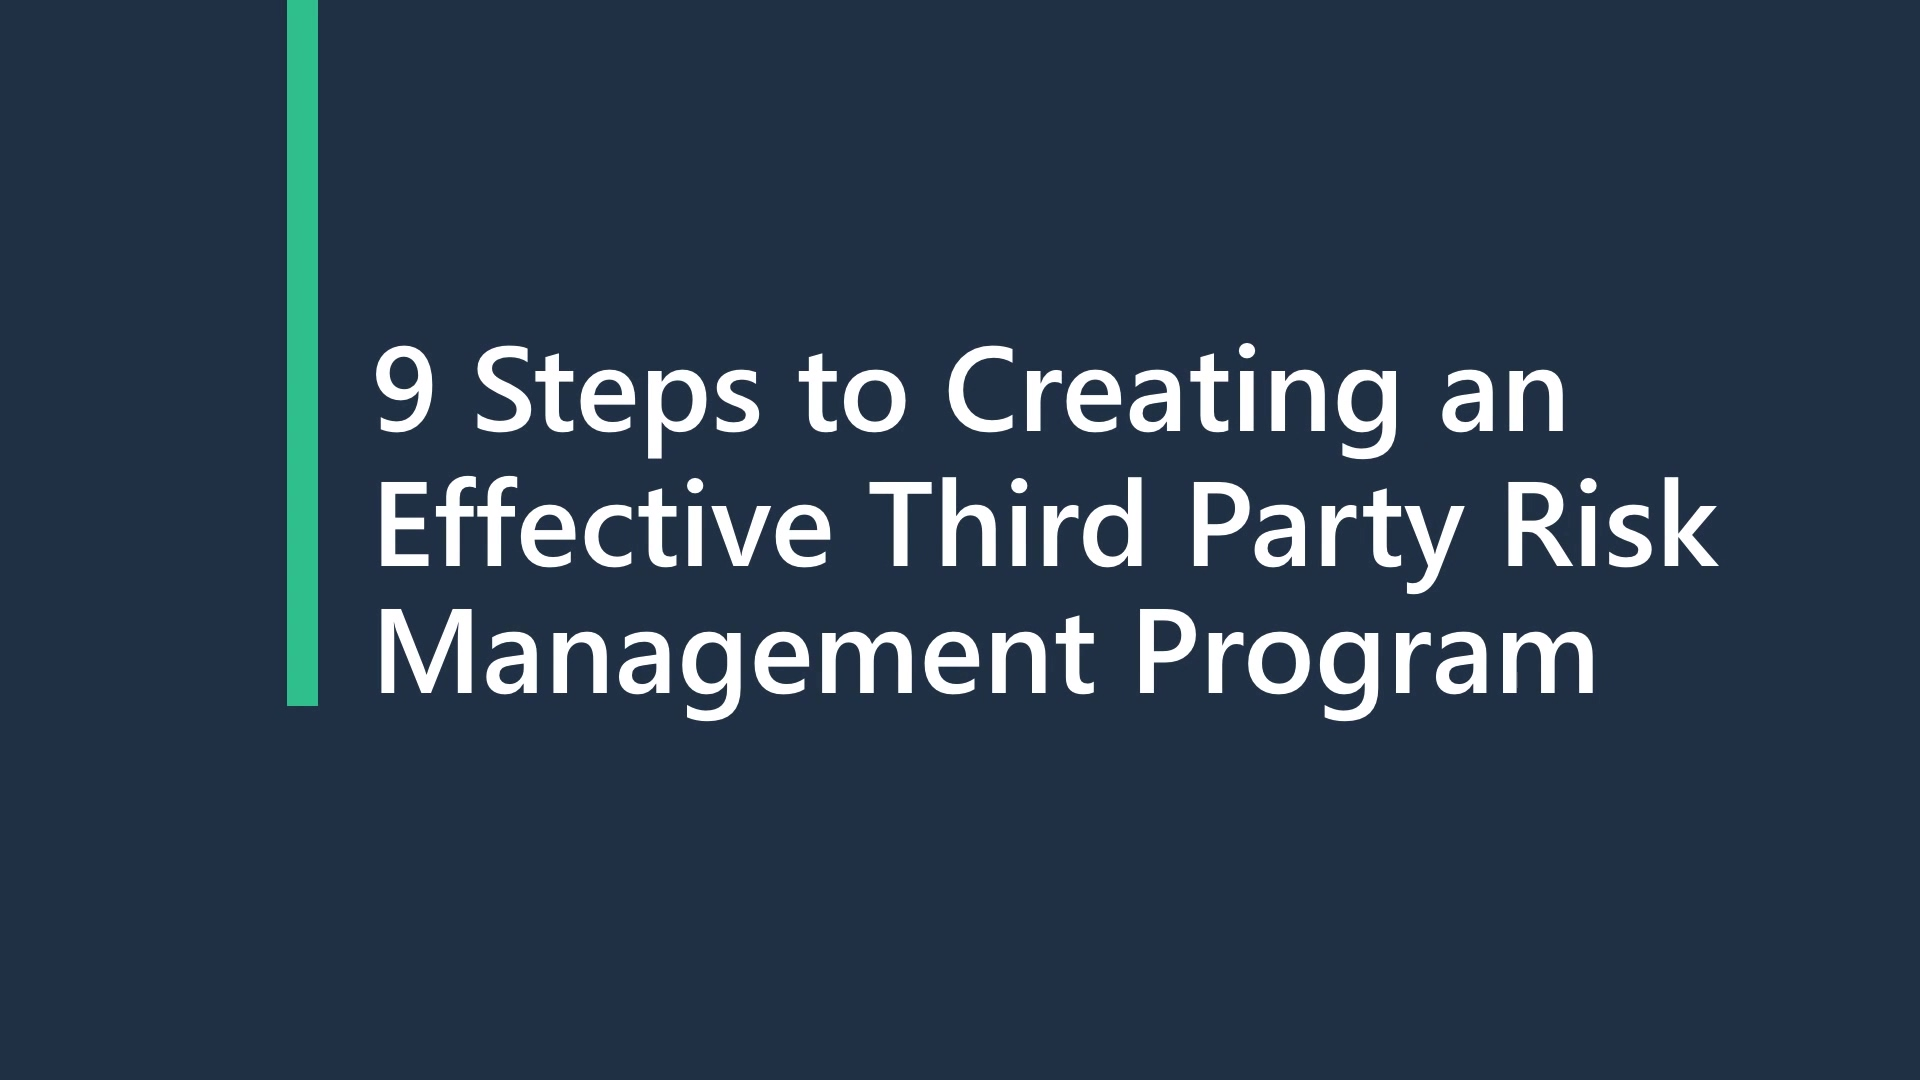 9 Steps to Creating an Effective 3rd Party Risk Program - Final